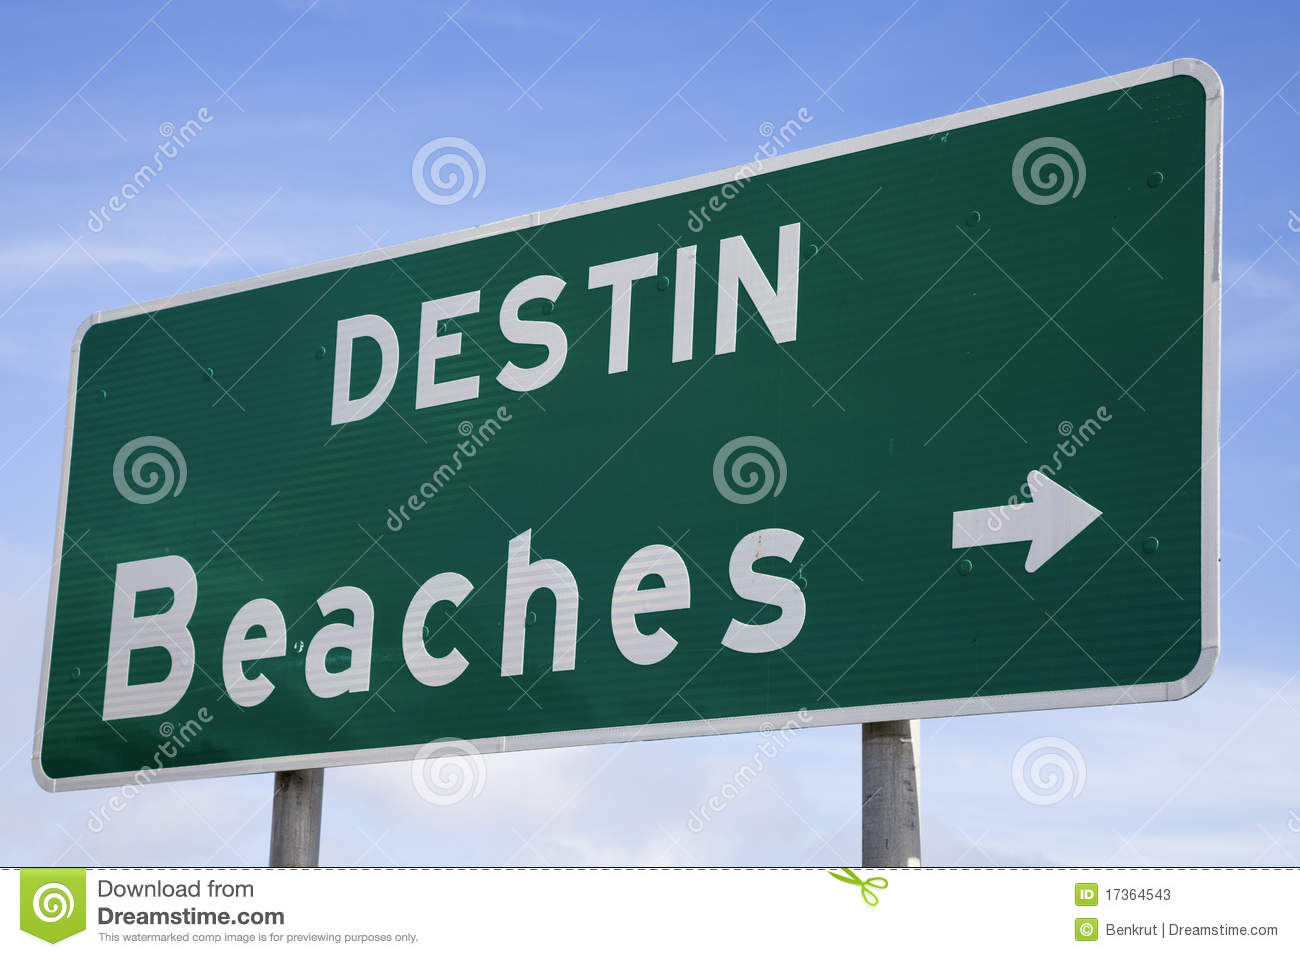 Destin Beaches Sign Stock Photos.